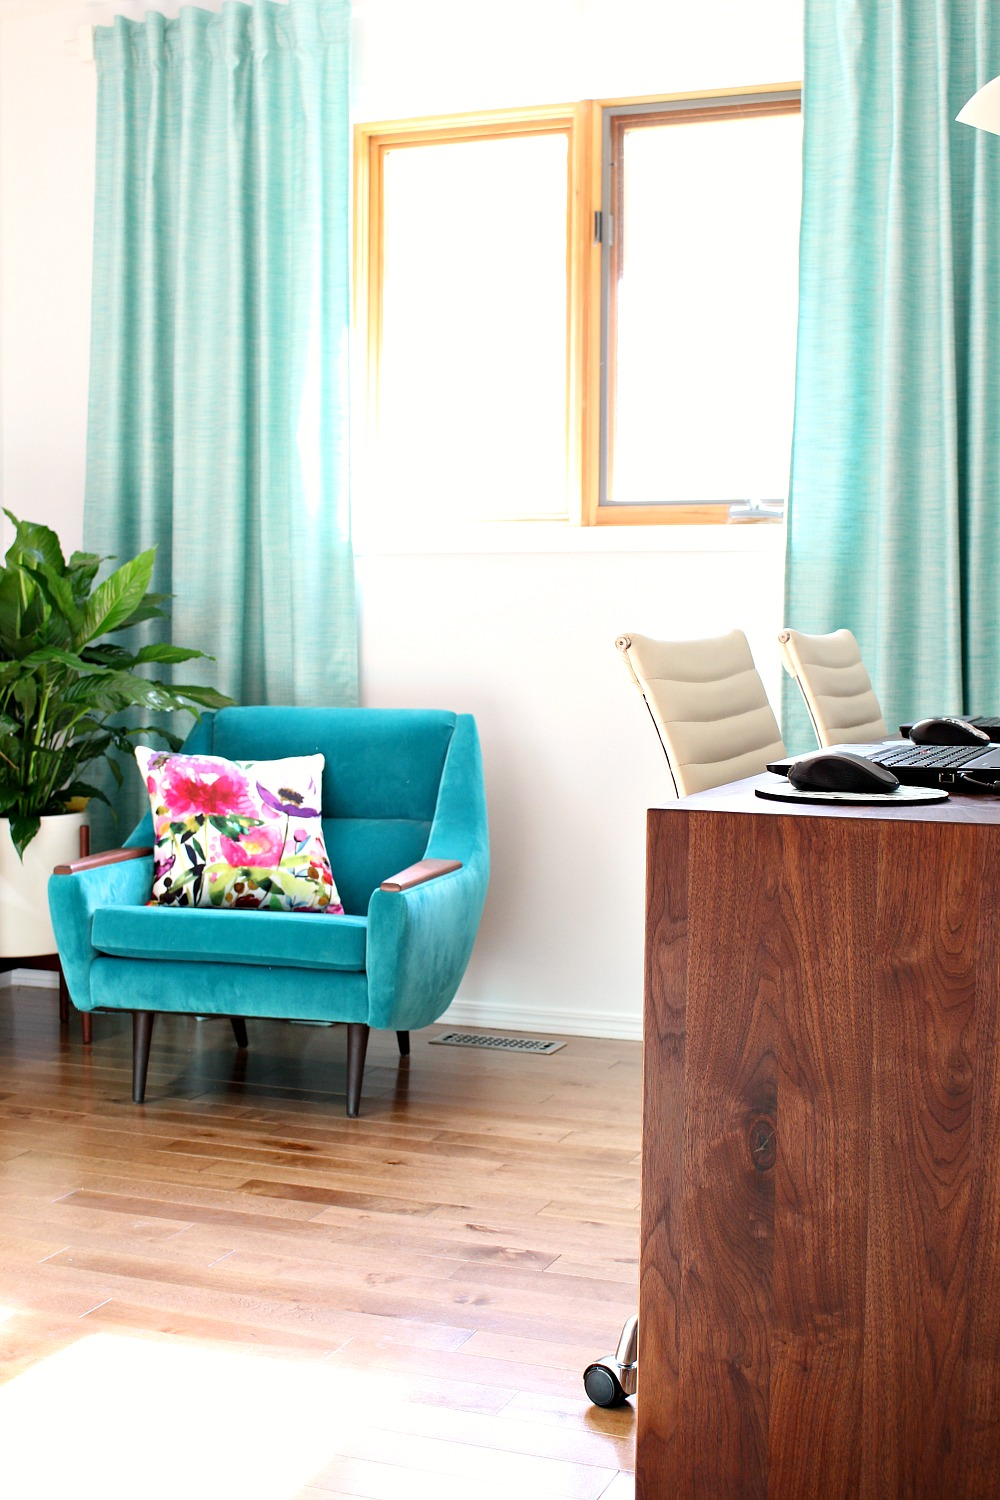 Home Office Makeover with a Colorful, Mid-Century Modern Inspired ...